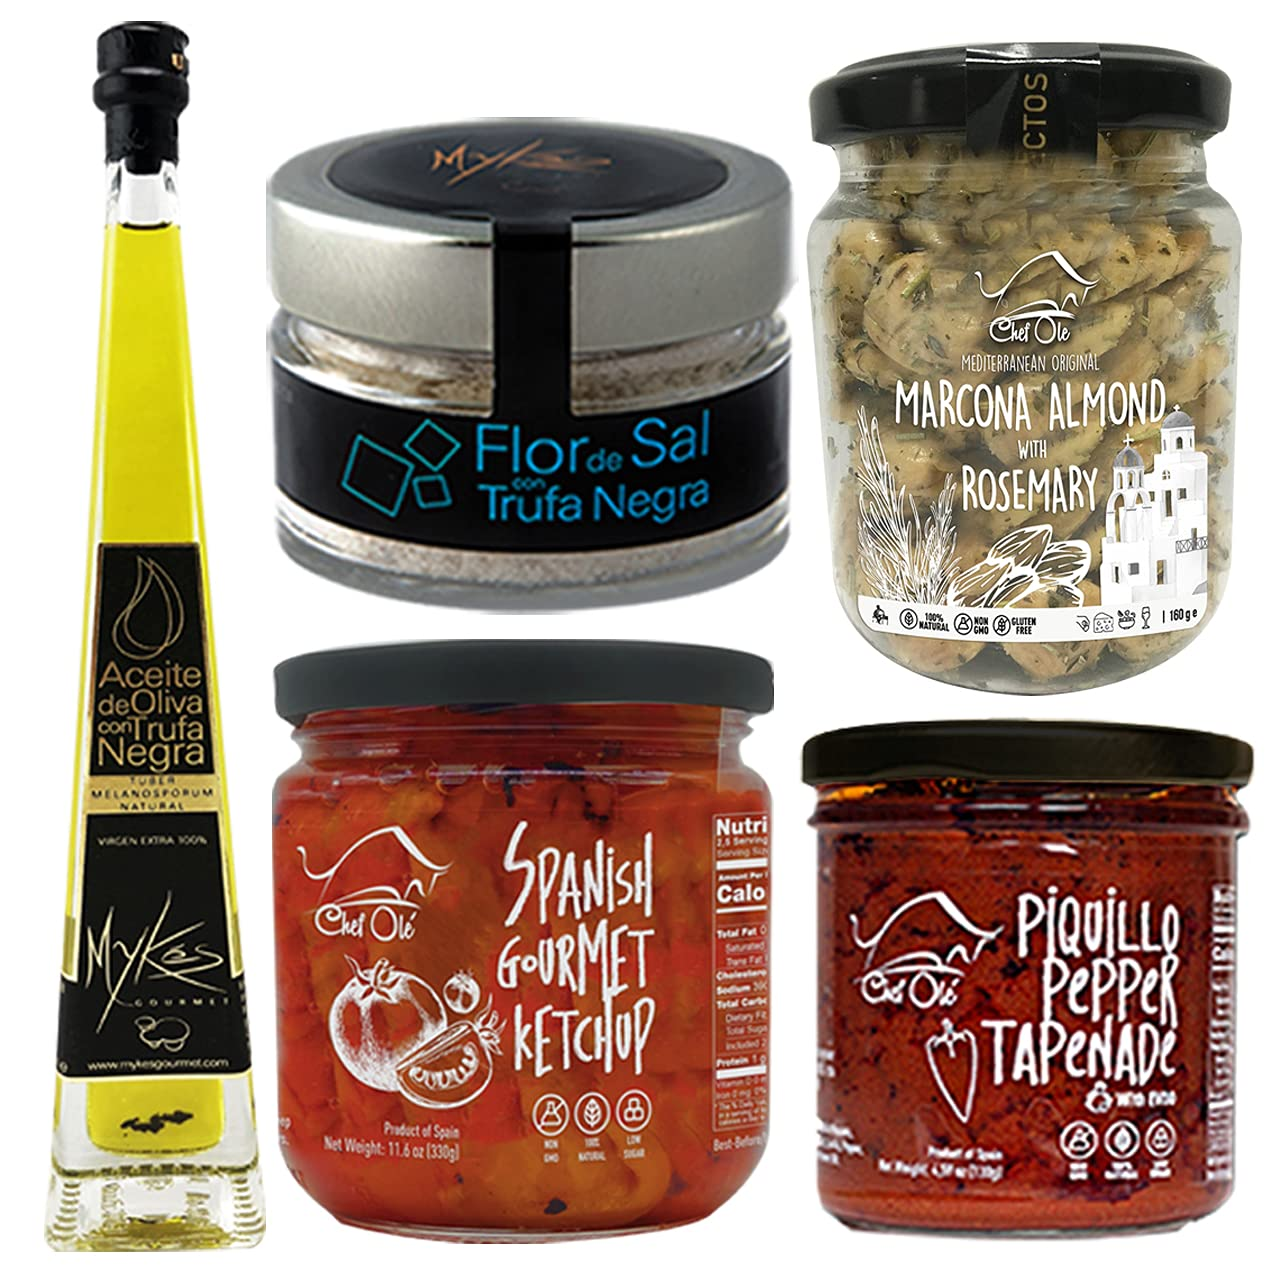 Dali Gourmet Food Gift Box- Chef Ole - IMPORTED FROM SPAIN- GOURMET FOOD GIFT BASKET – 5 PREMIUM PRODUCTS- GOURMET SALT, CARAMELIZED ONIONS JAM, XTRA BIG FILLED OLIVE, ARTISAN OLIVE OIL & AGED VINEGAR